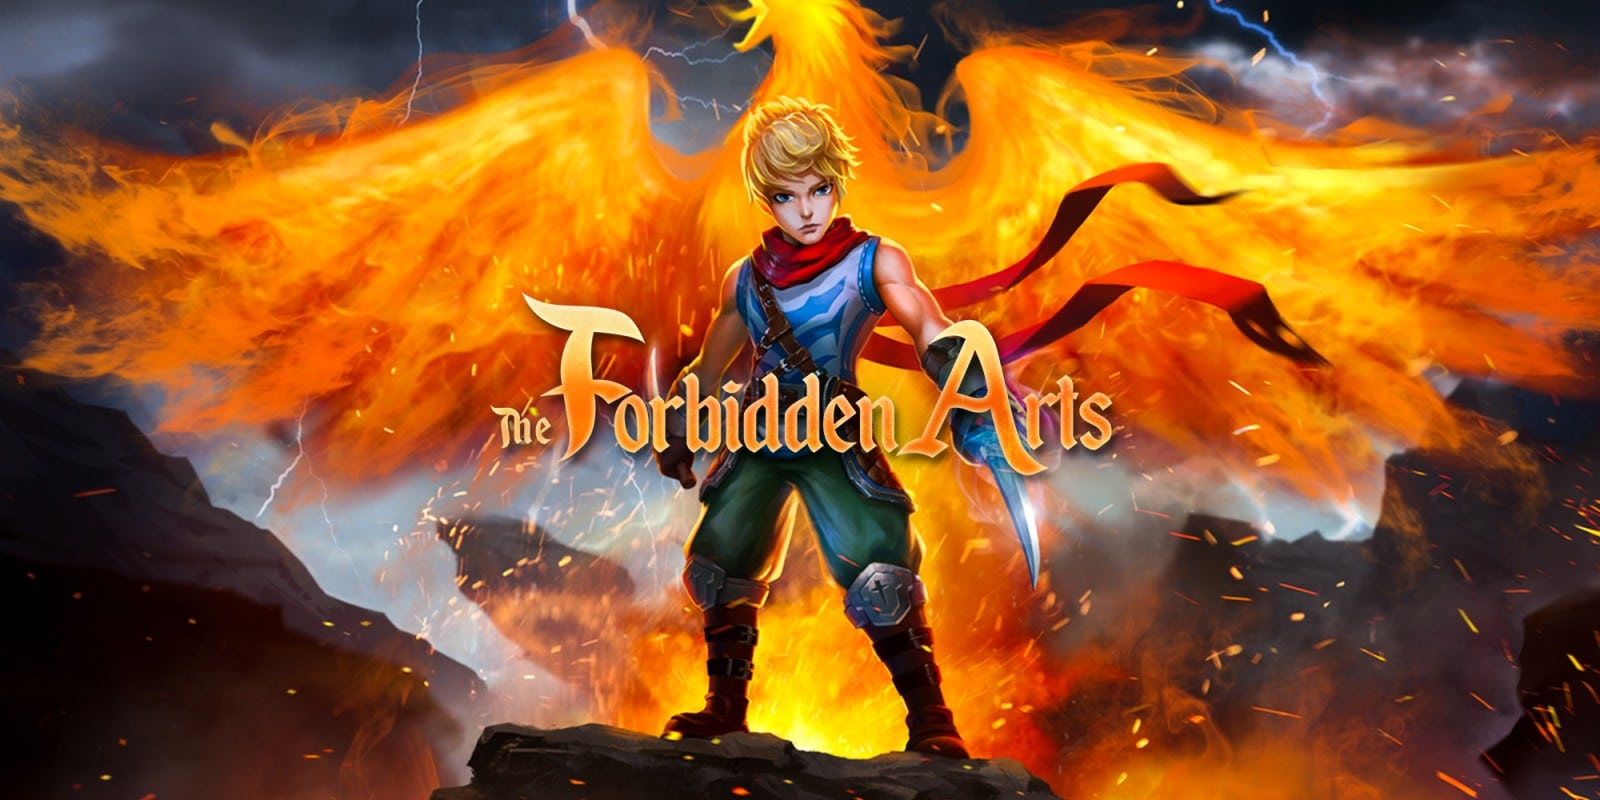 The Forbidden Arts coming 7th August